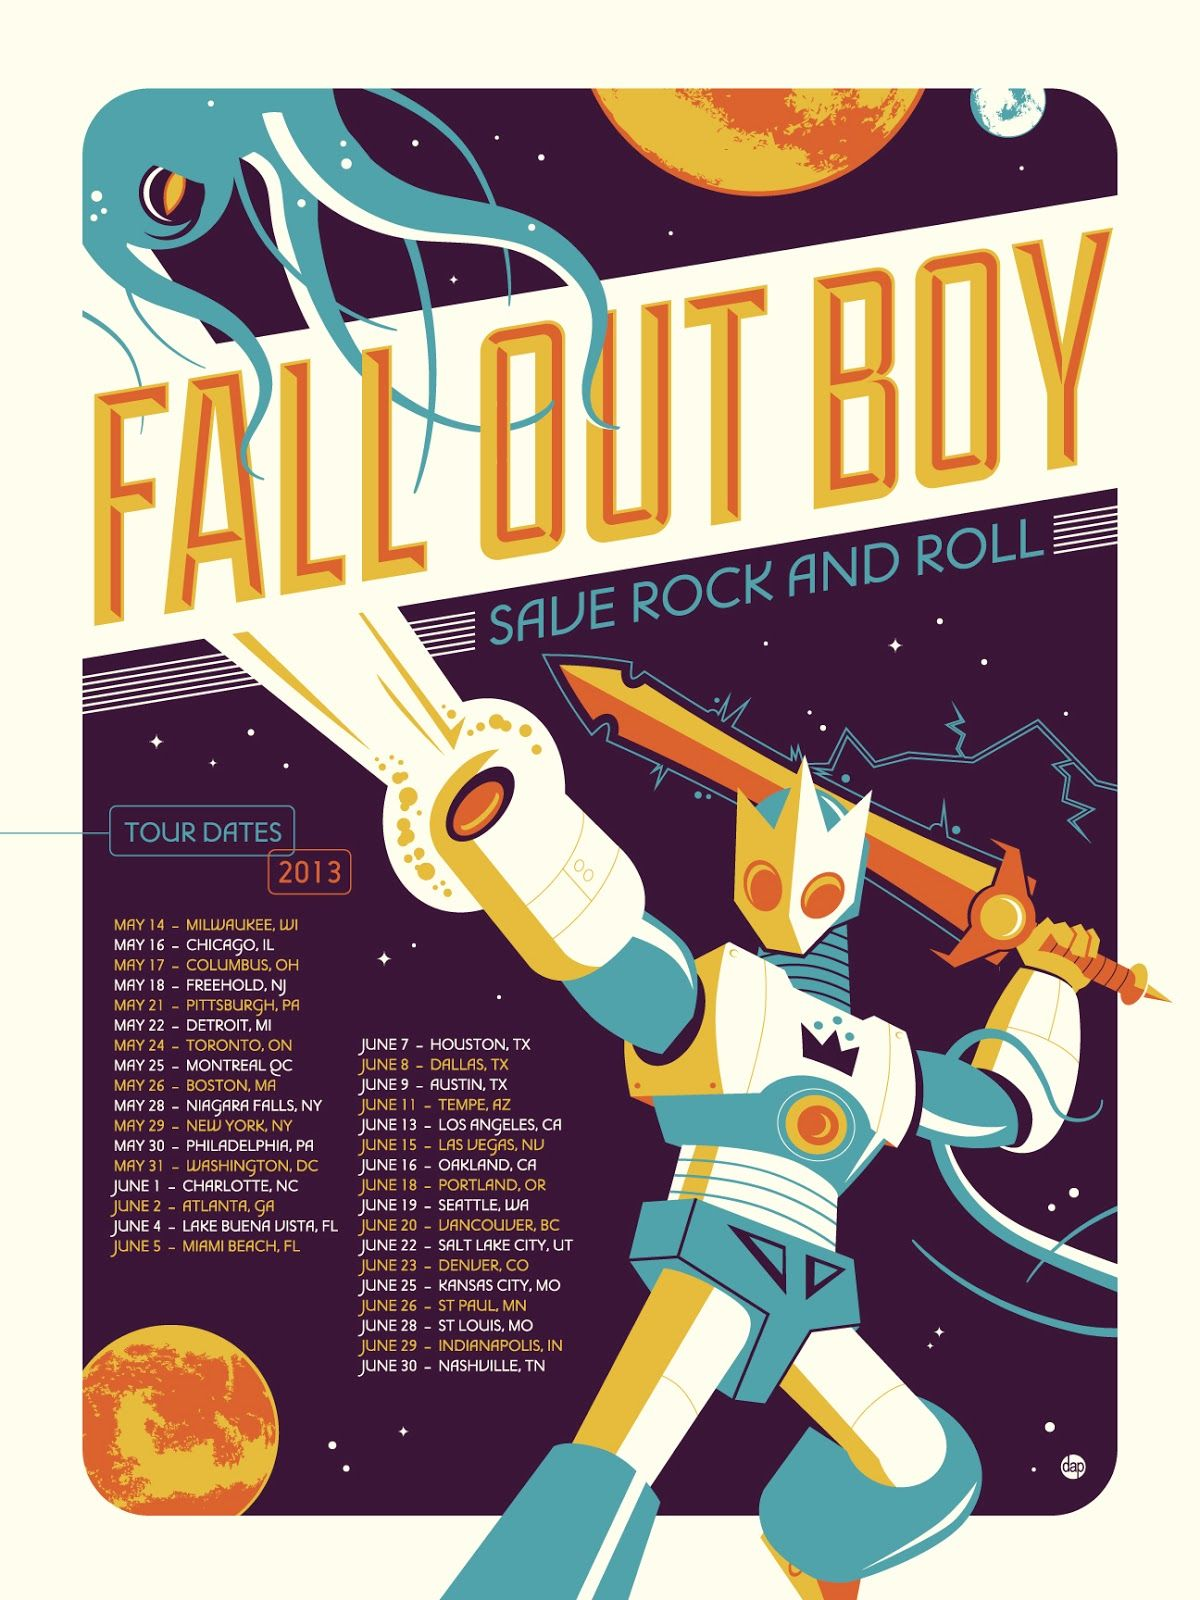 This Is A Very Cool Example Of Concert Posters As Art. You